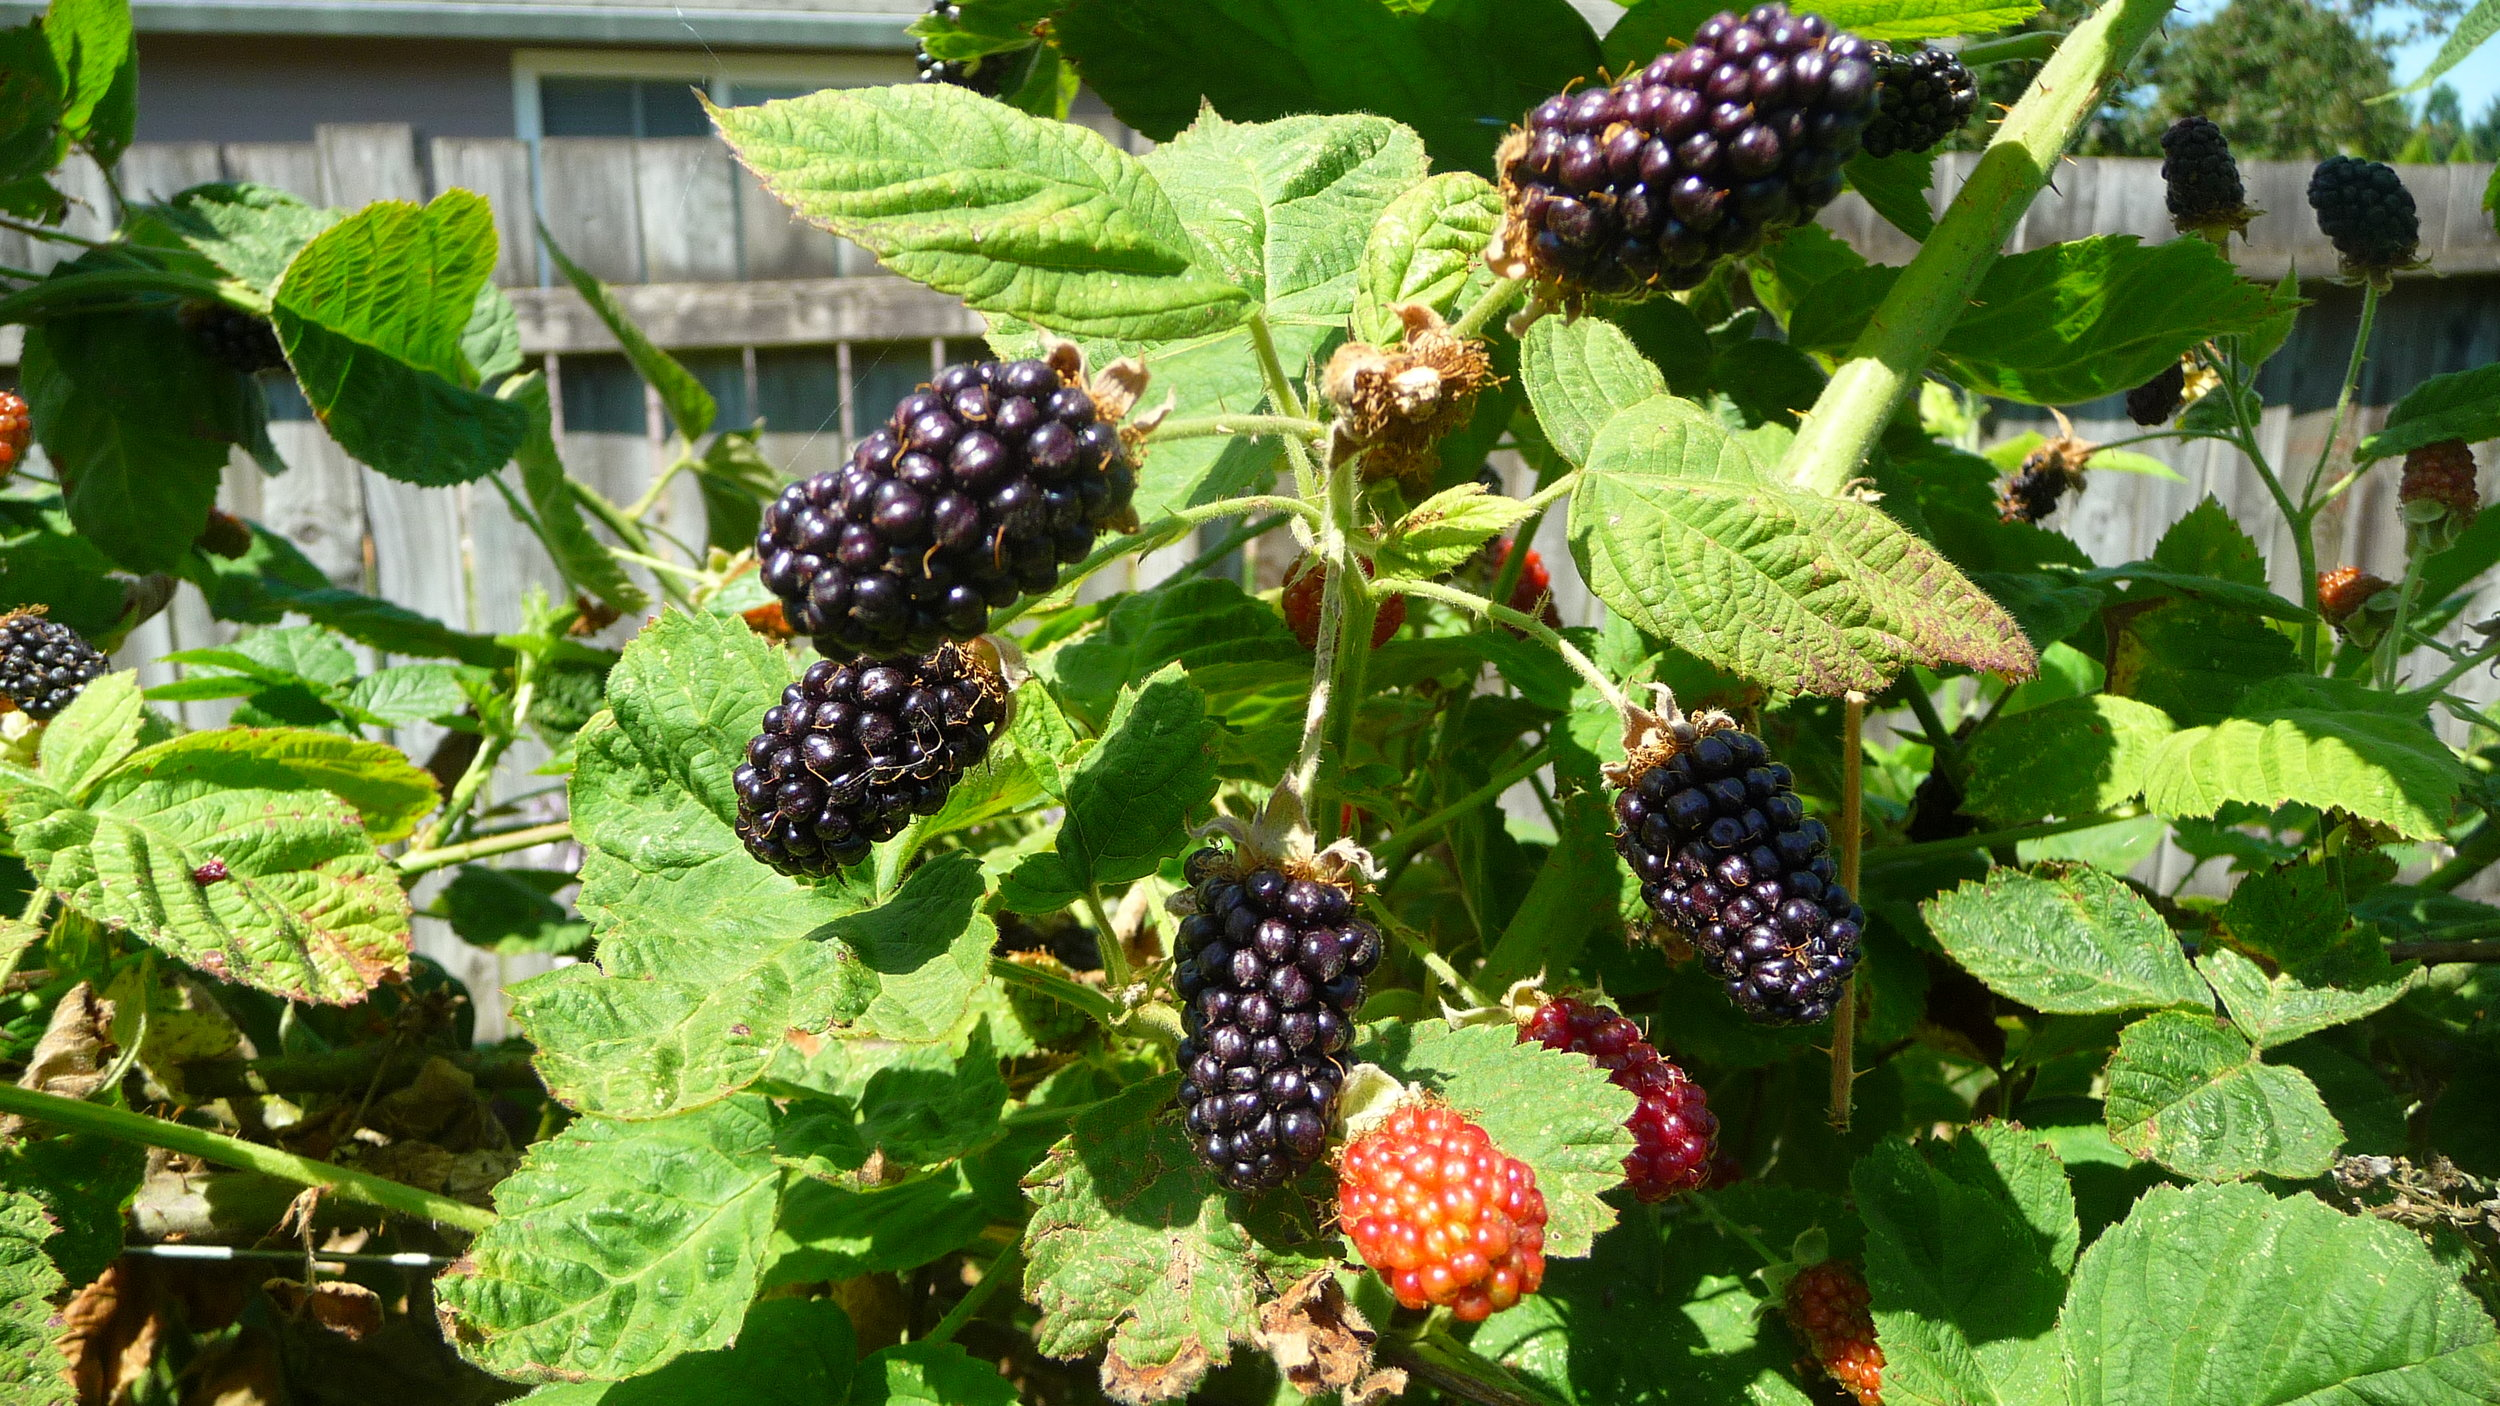 Marionberries the size of my thumb. What a blessing.